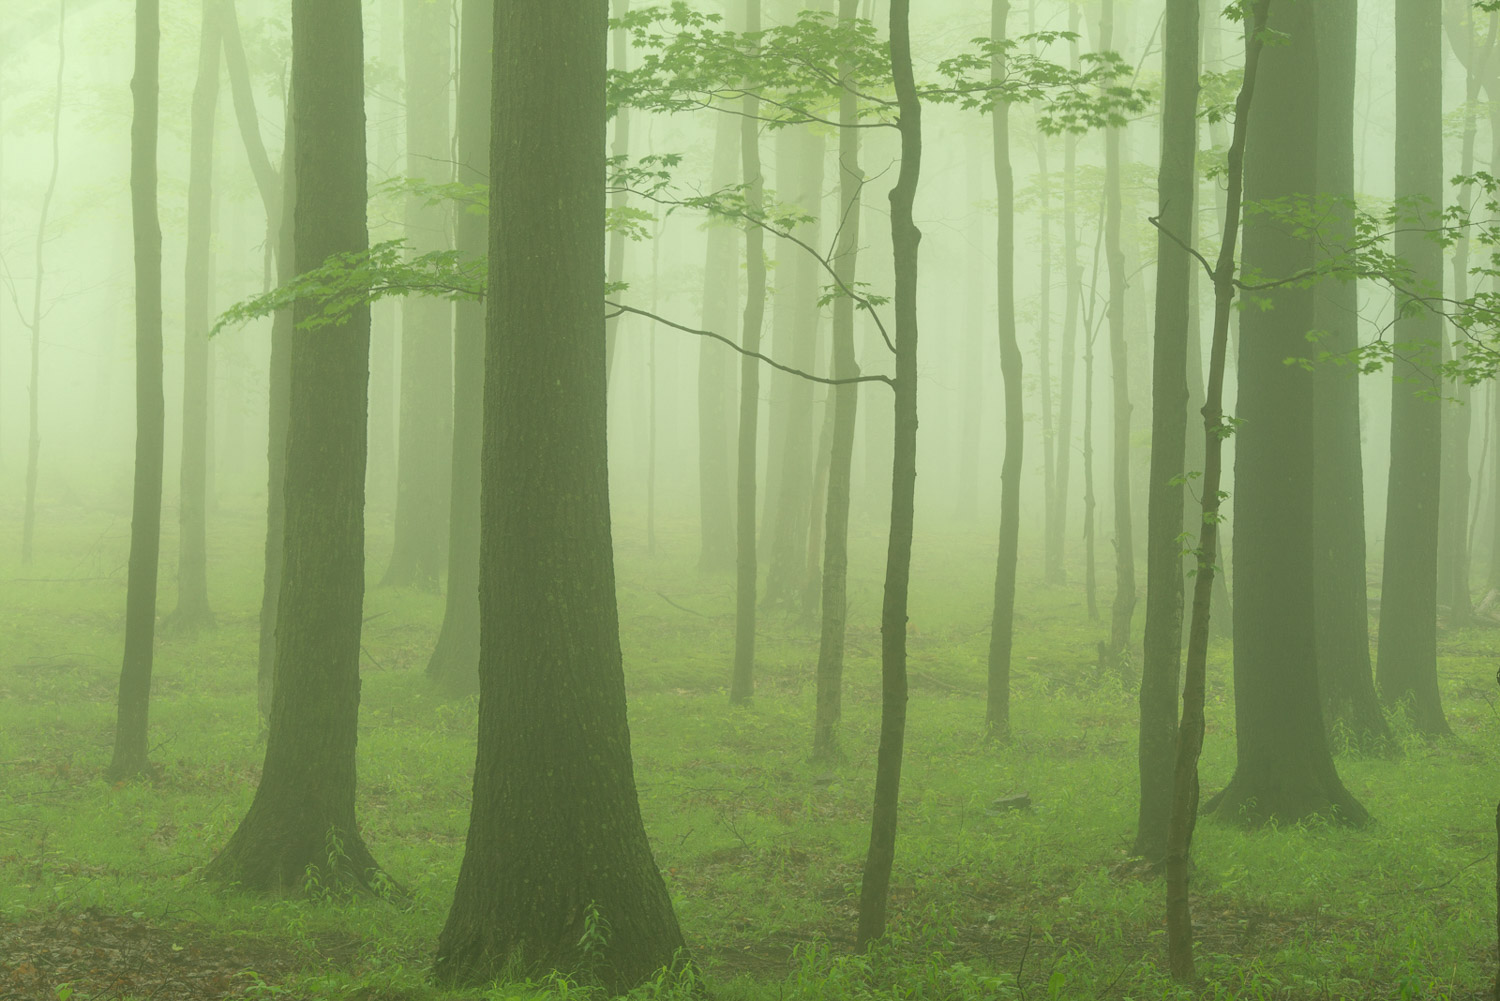 Morning fog in the hardwood forest captured on a spring day in May.